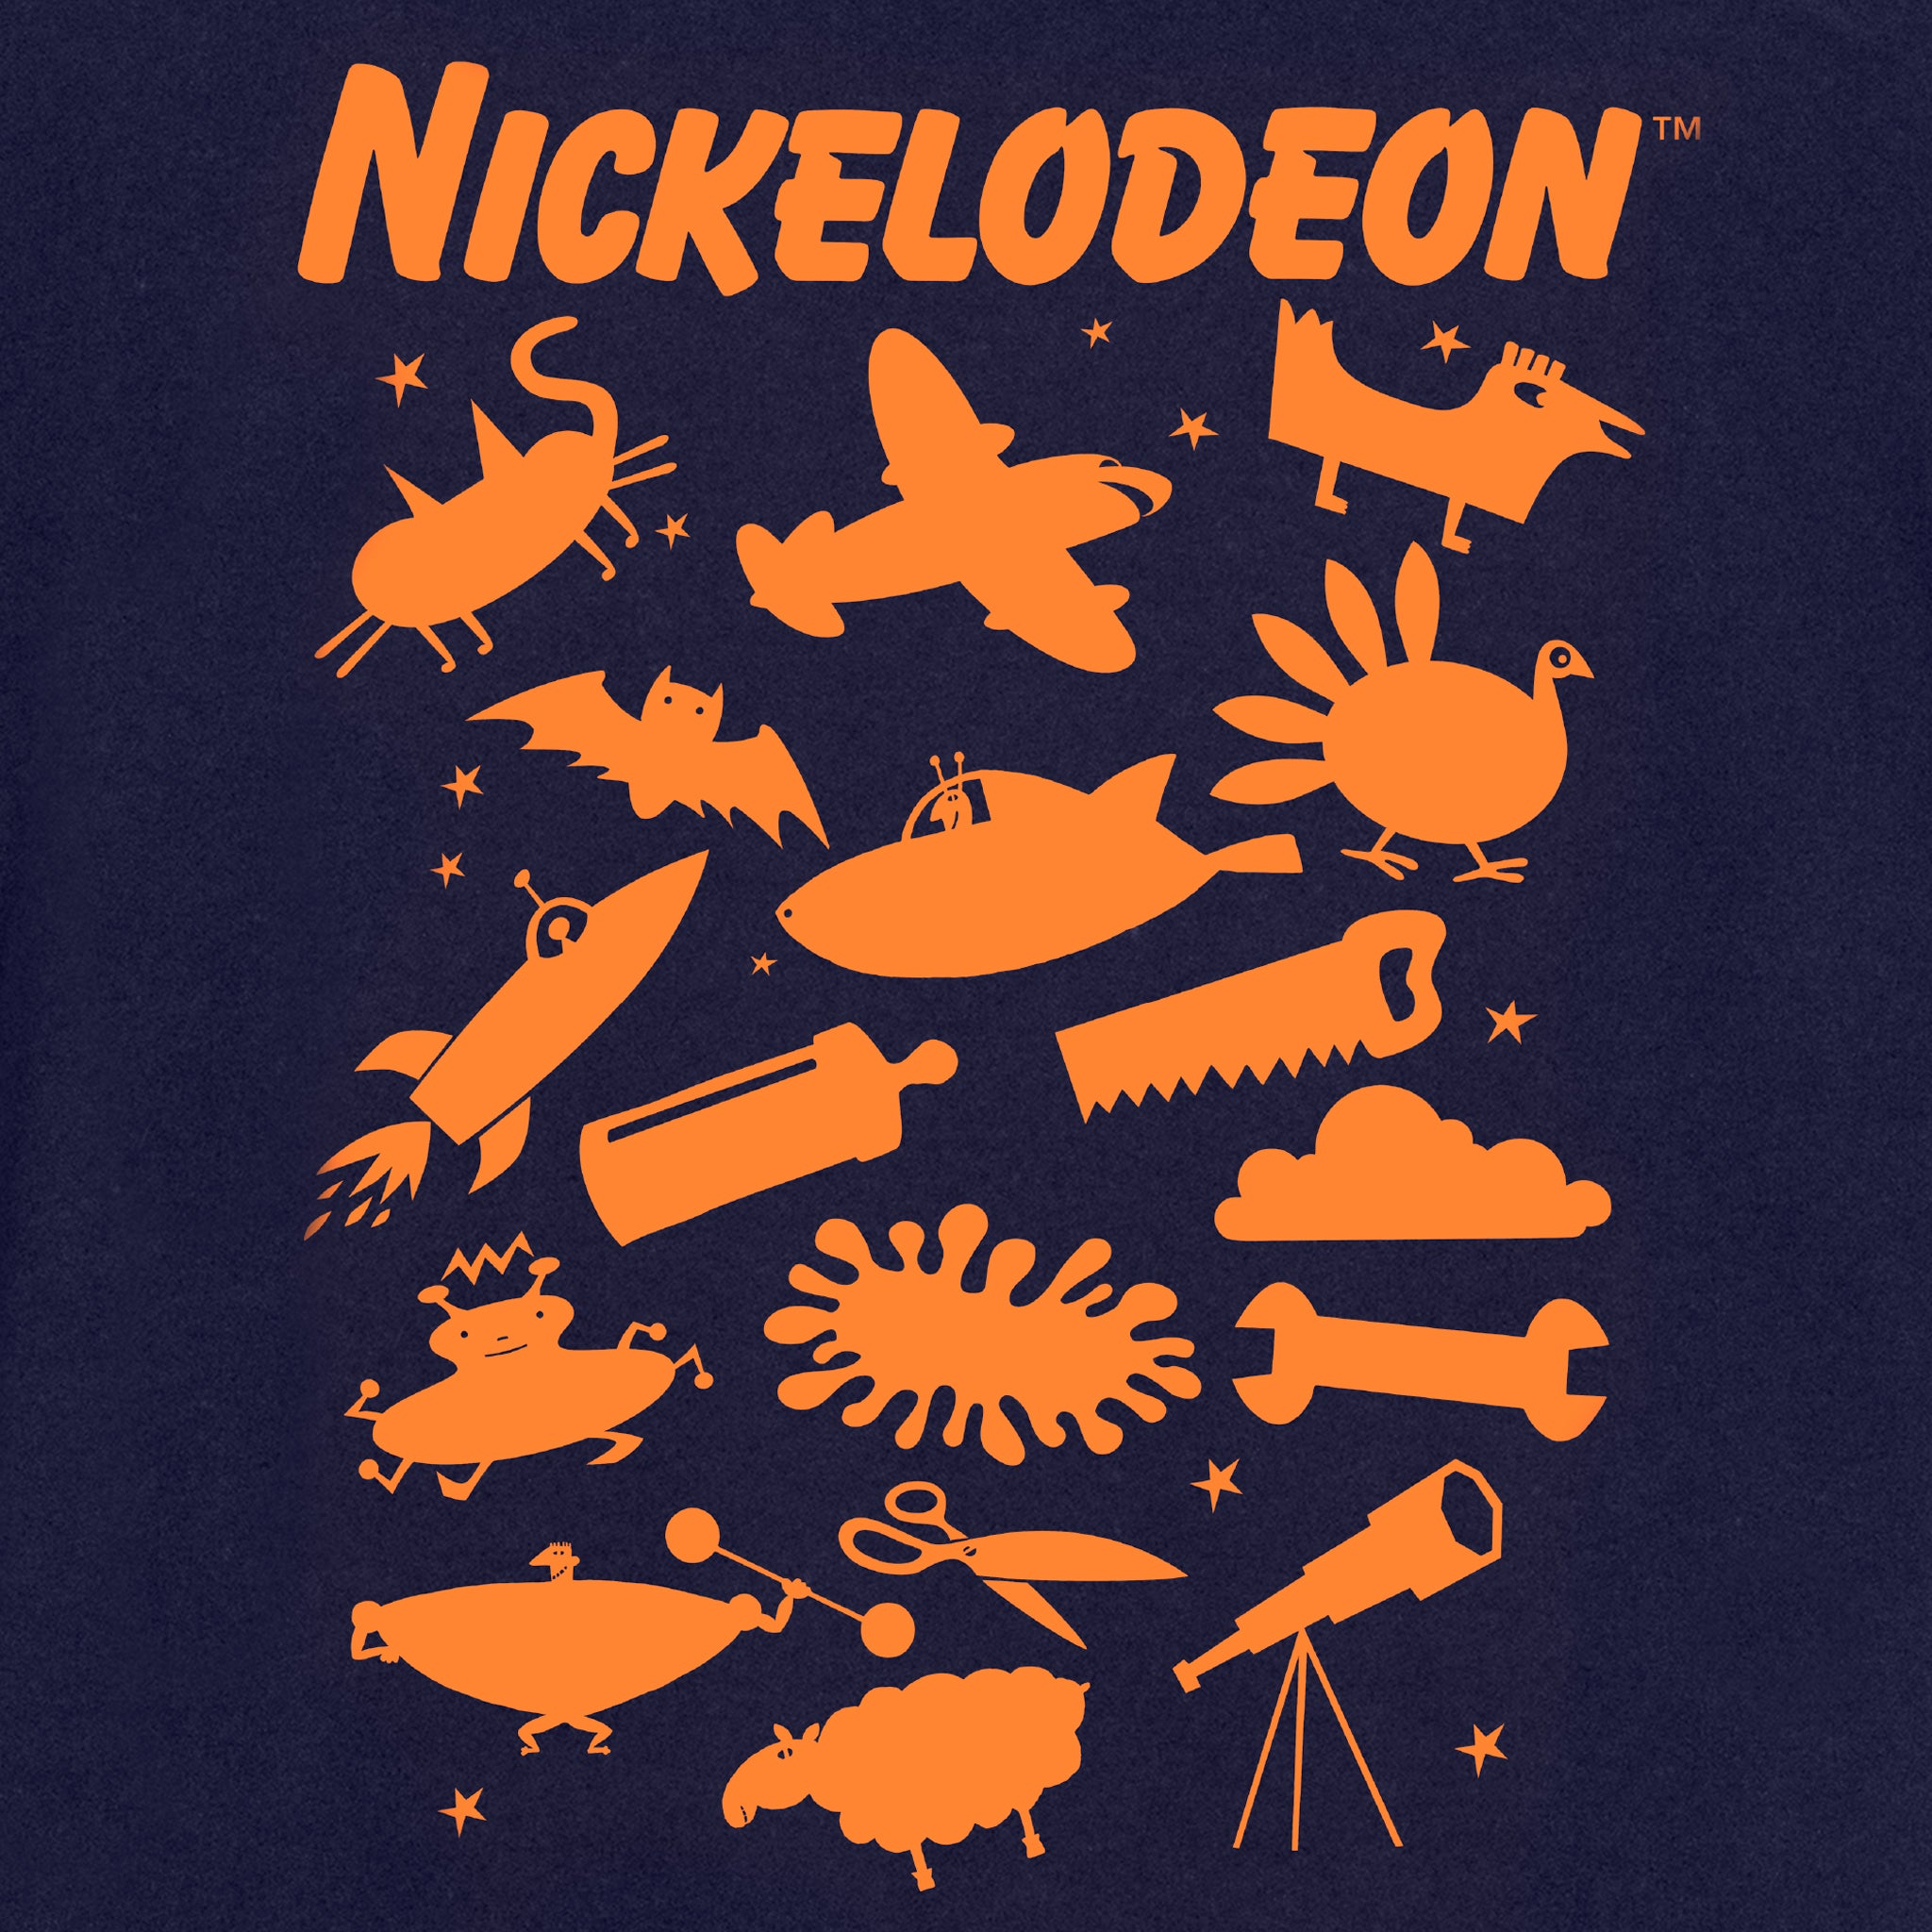 nickelodeon nick classic bumper 90s kids apparel t-shirt graphic shirt culturefly